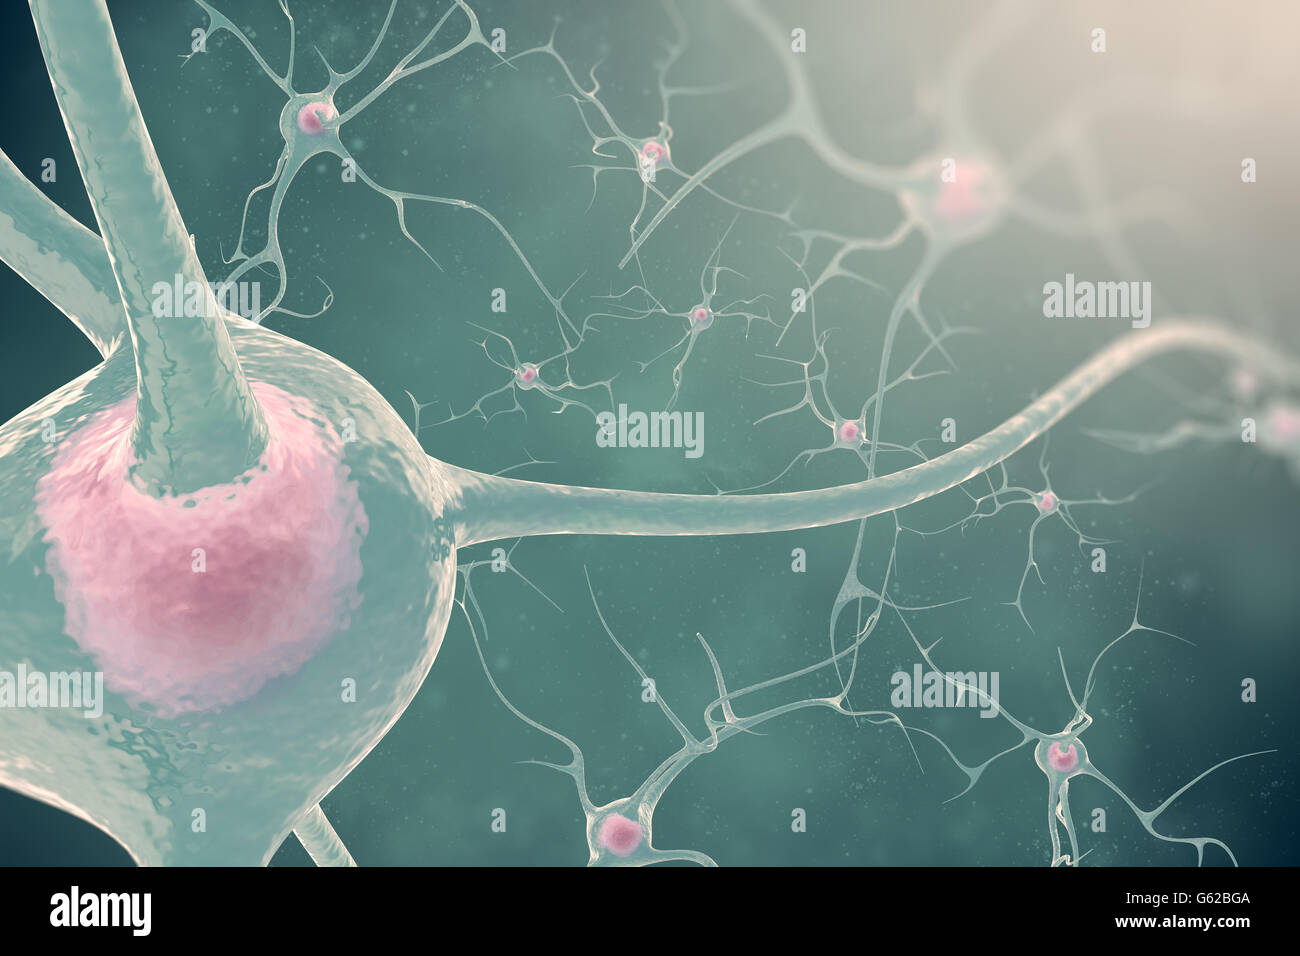 The neurons of the nervous system with the effect blurring and light. 3d illustration nerve cells Stock Photo